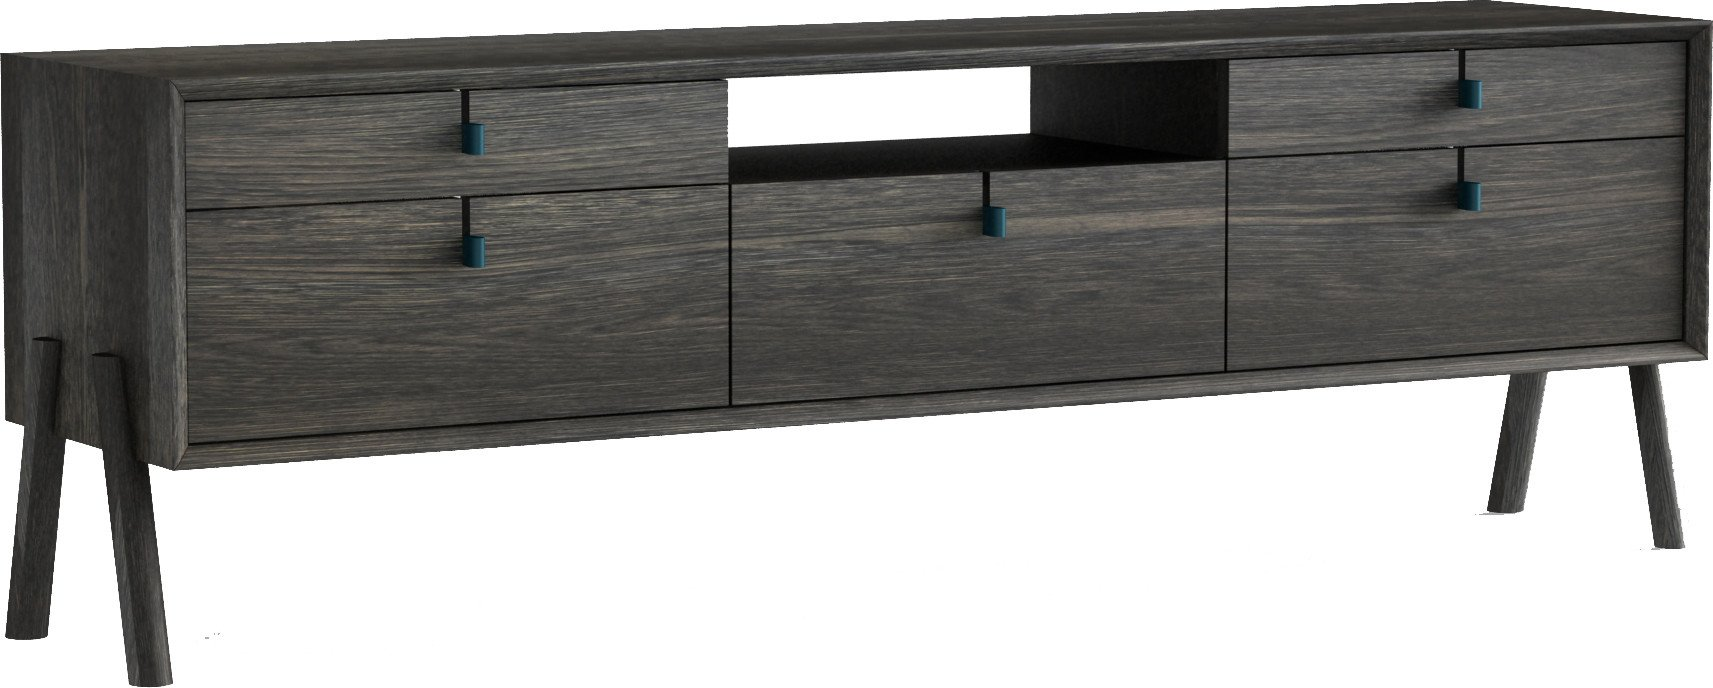 Amelia High RTV Sideboard Ebony Oak 170cm, Tamo